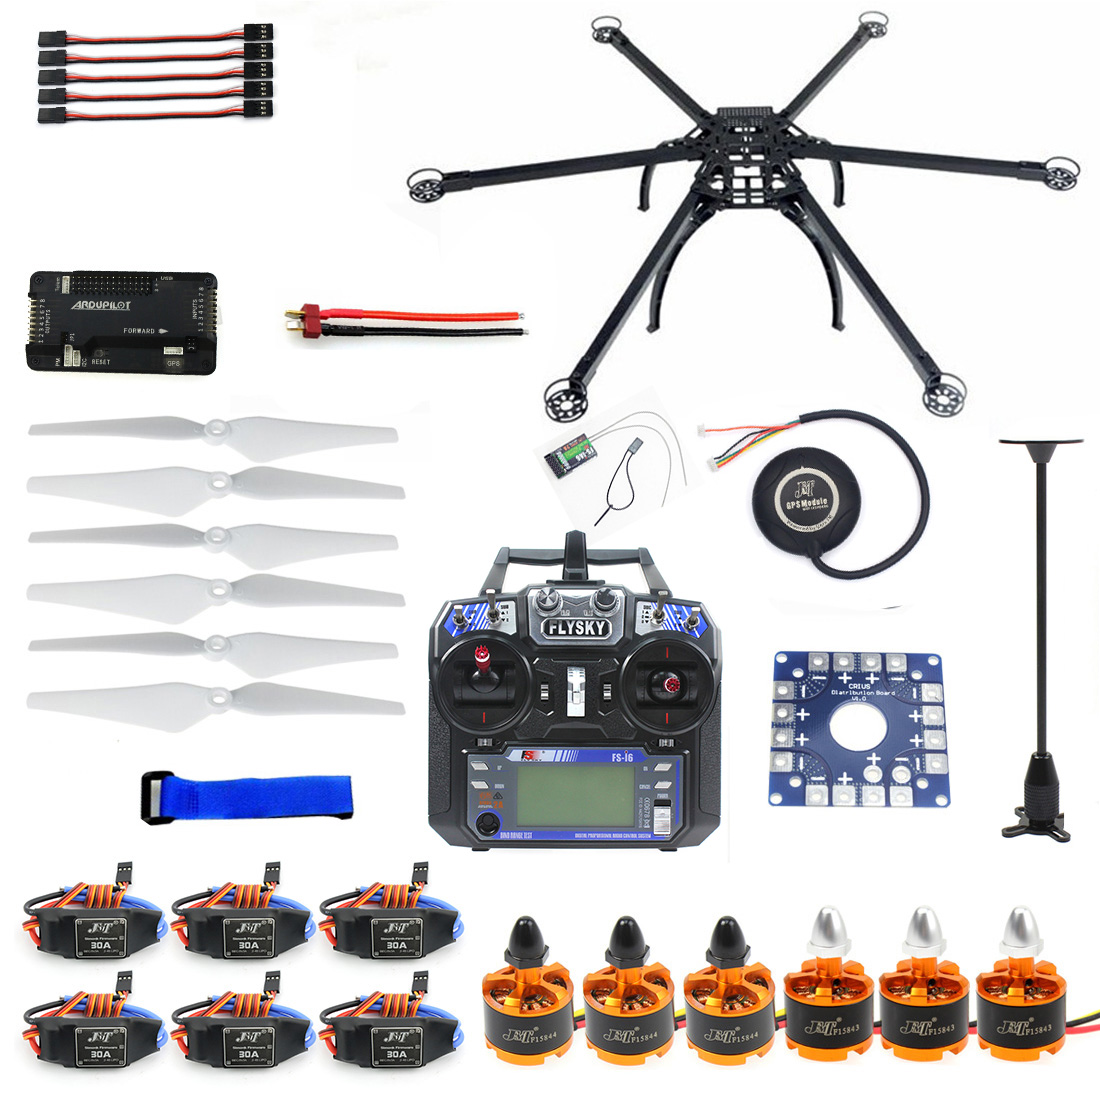 US $170 1 19% OFF|DIY Drone Kit 6 Axis Hexacopter Unassembled GPS with  Flysky FS i6 6CH Transmitter Receiver APM 2 8 Flight Controller  Multicopter-in